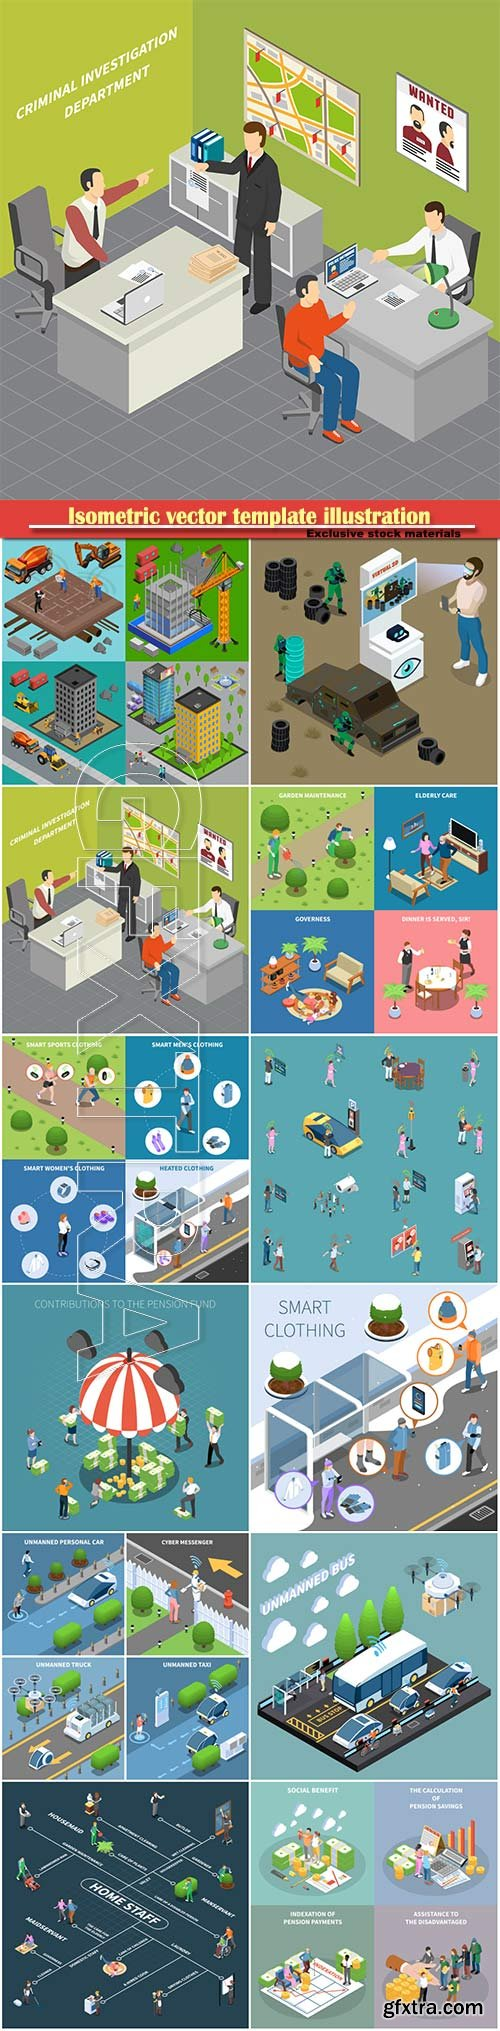 Isometric vector template illustration # 13